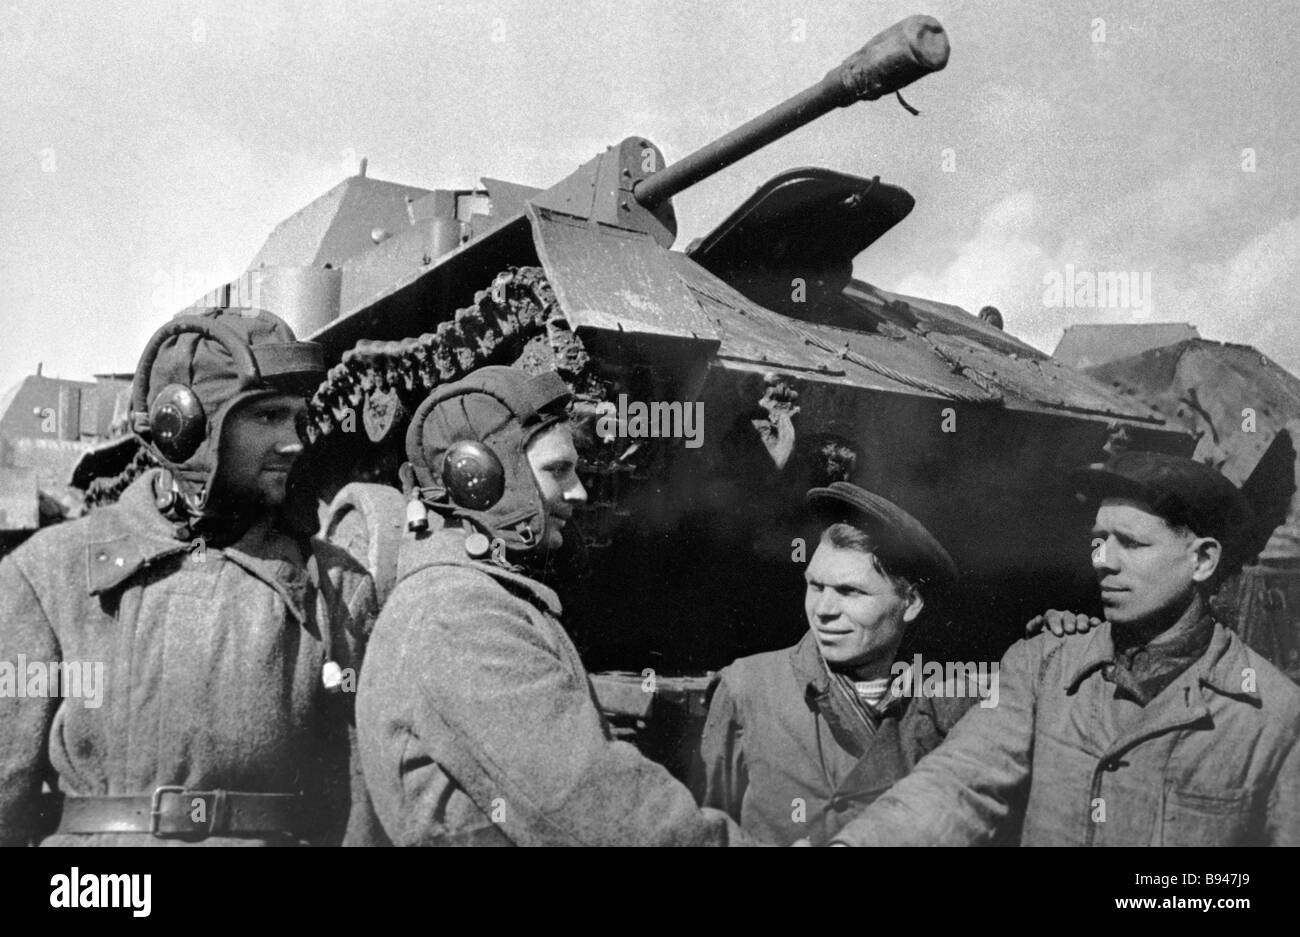 Komsomol members hand self propelled artillery to a crew from the battlefront - Stock Image